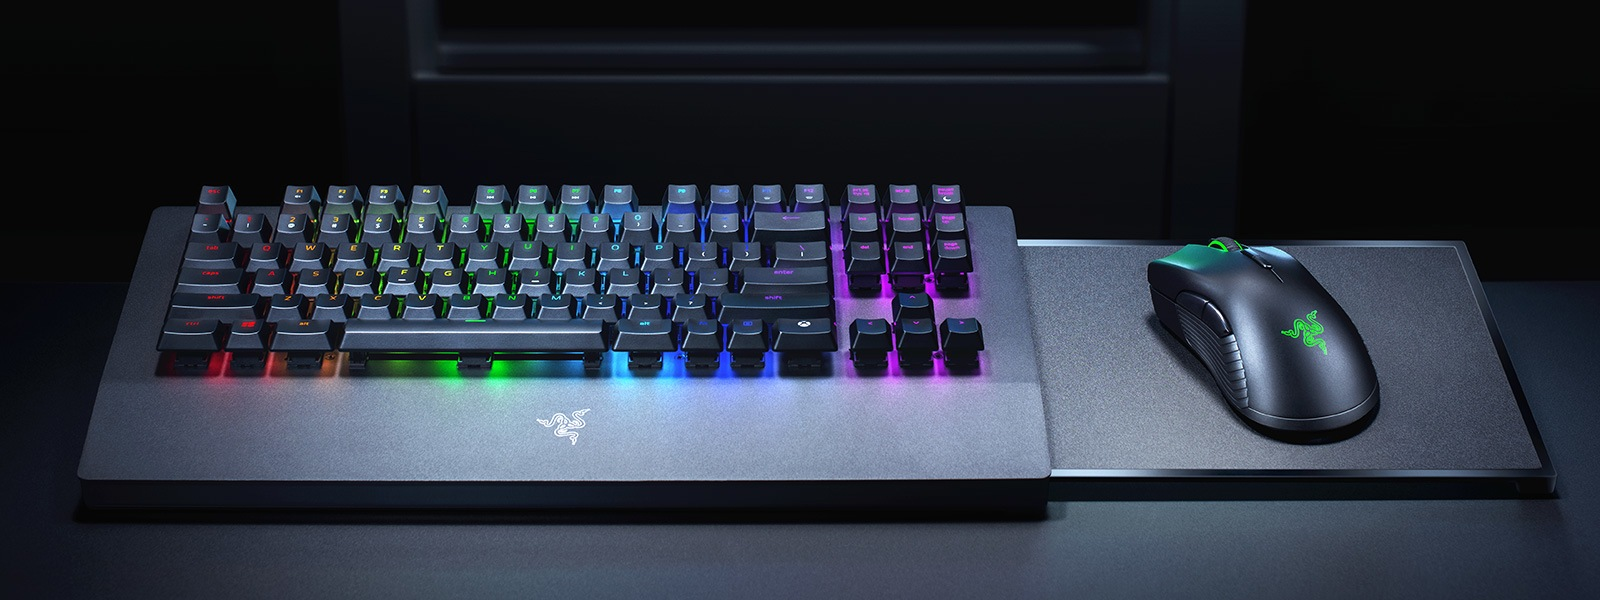 Feature Center Razer Keyboard